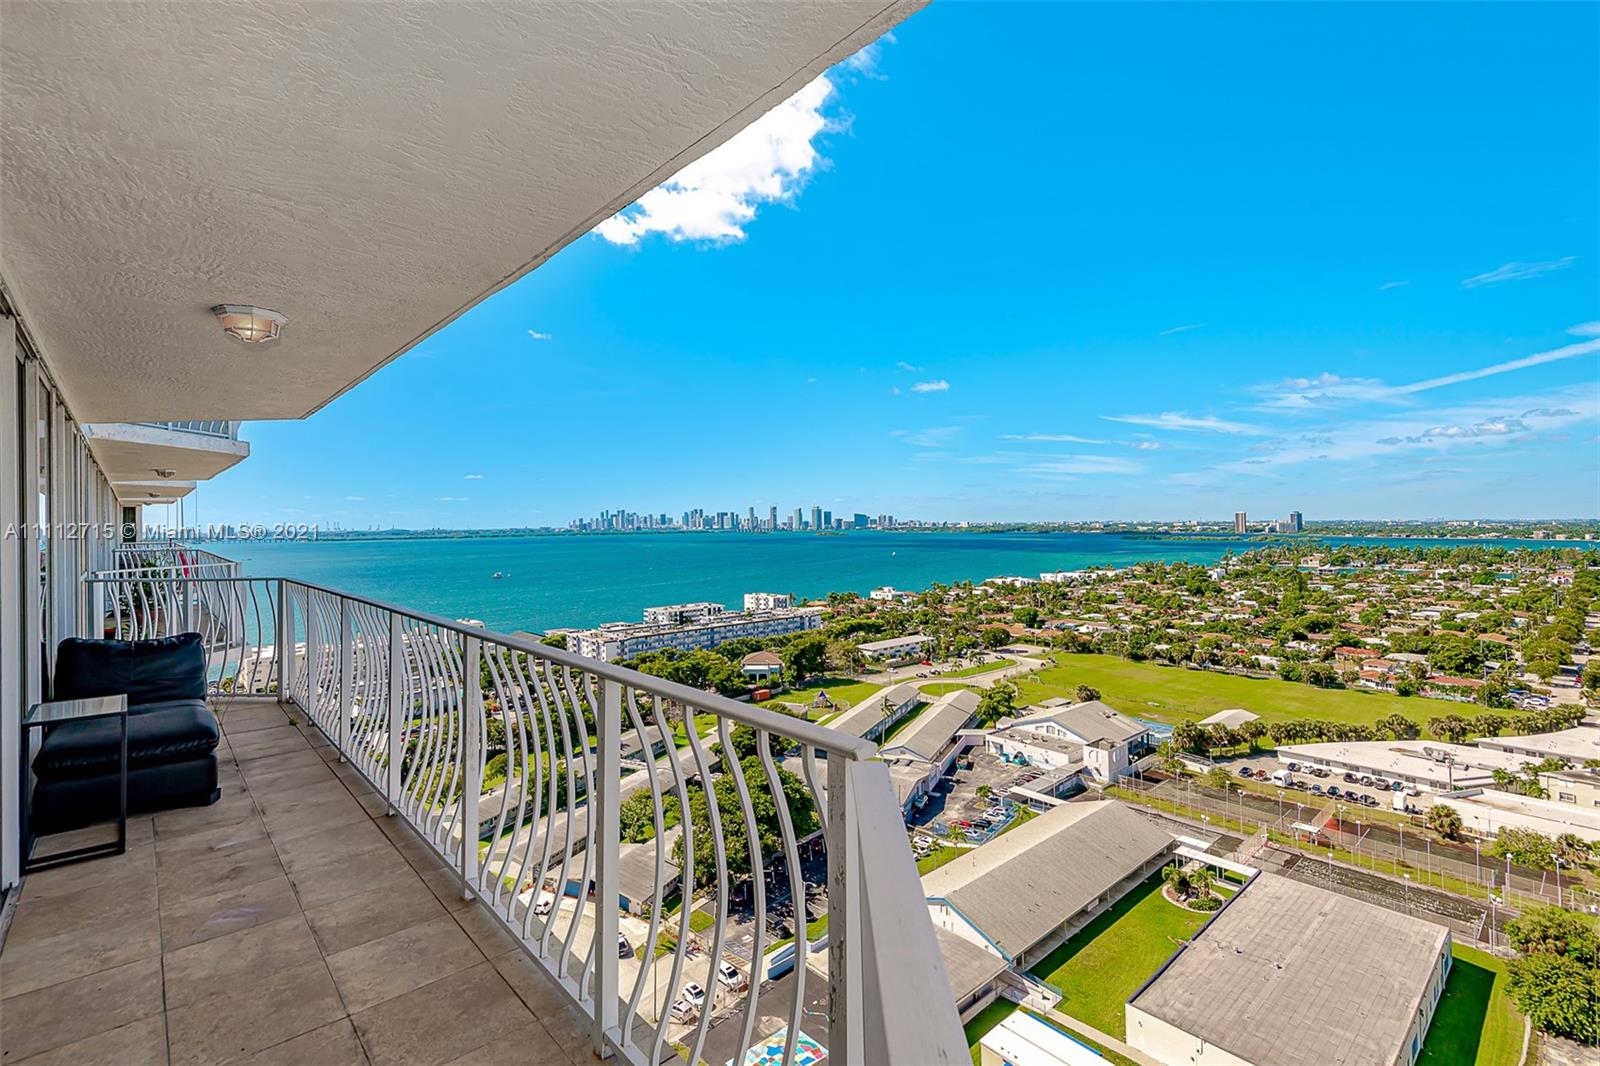 THE GRANDVIEW PALACE COND Condo,For Sale,THE GRANDVIEW PALACE COND Brickell,realty,broker,condos near me